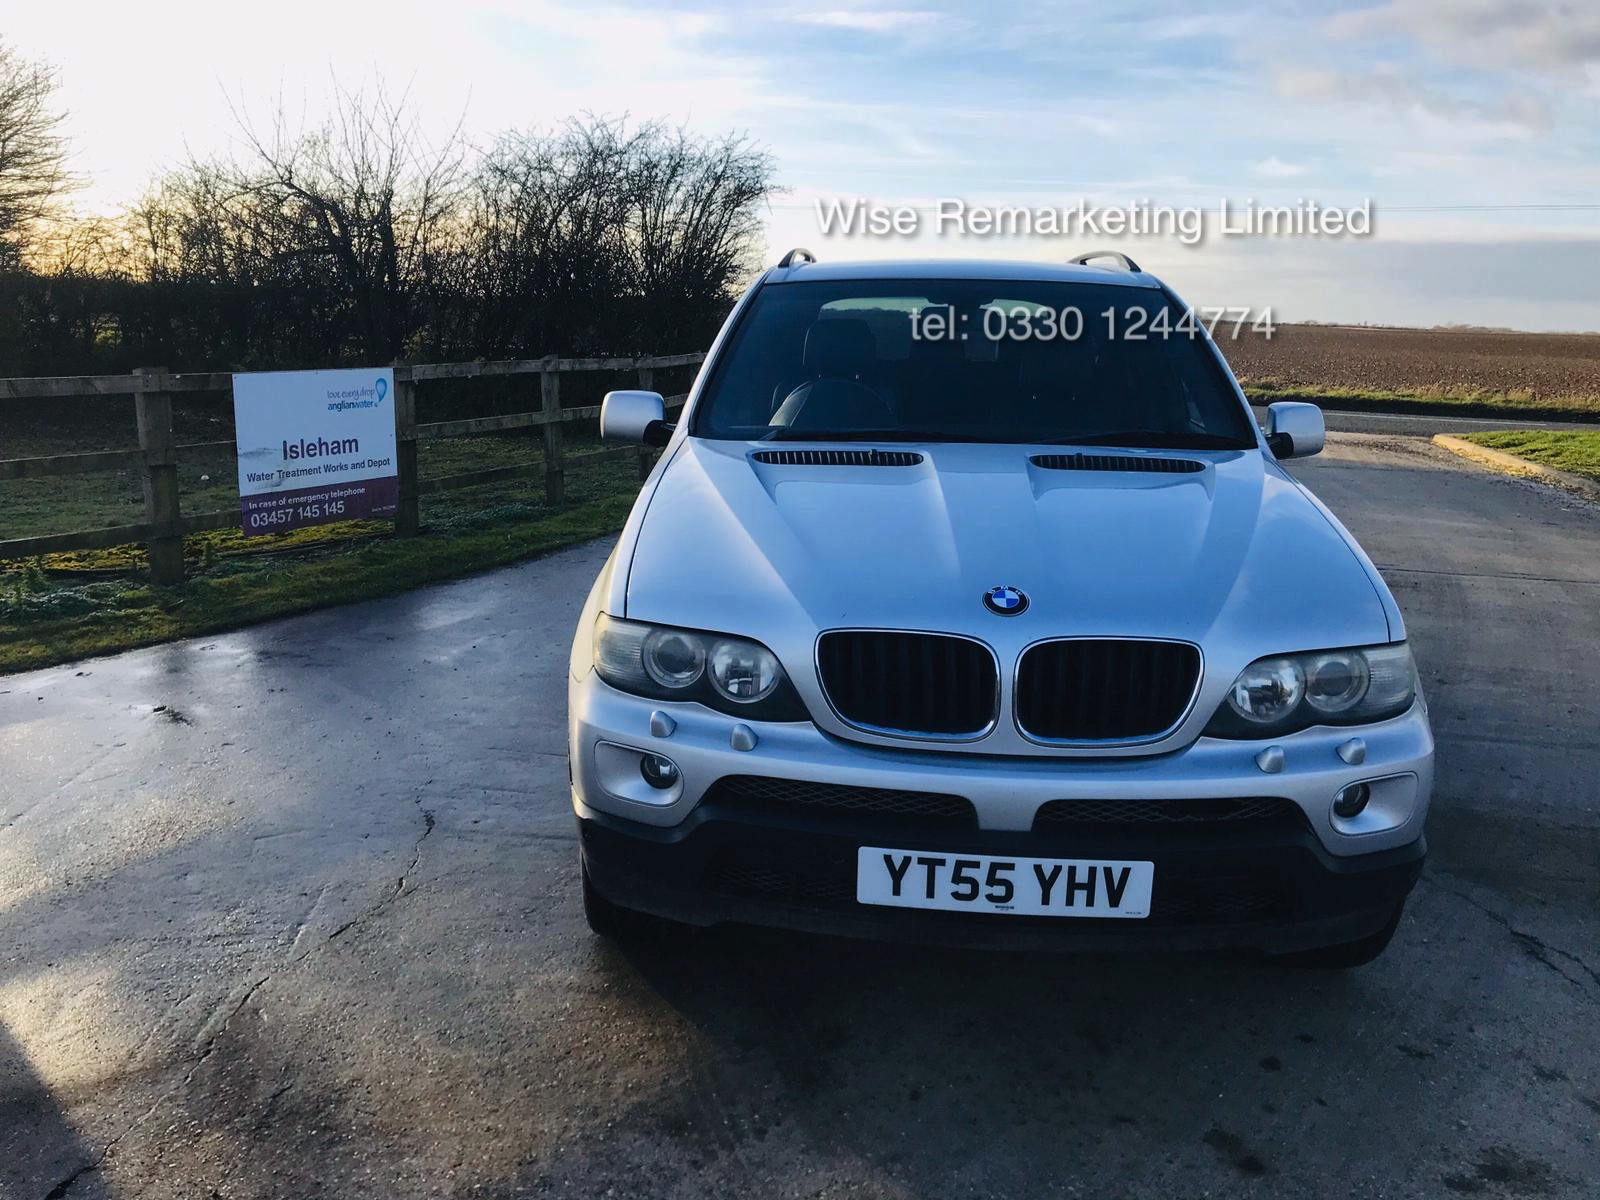 BMW X5 Sport 3.0d Auto - 2006 Model - Full Leather - Heated Seats - Fully Loaded - Image 2 of 20